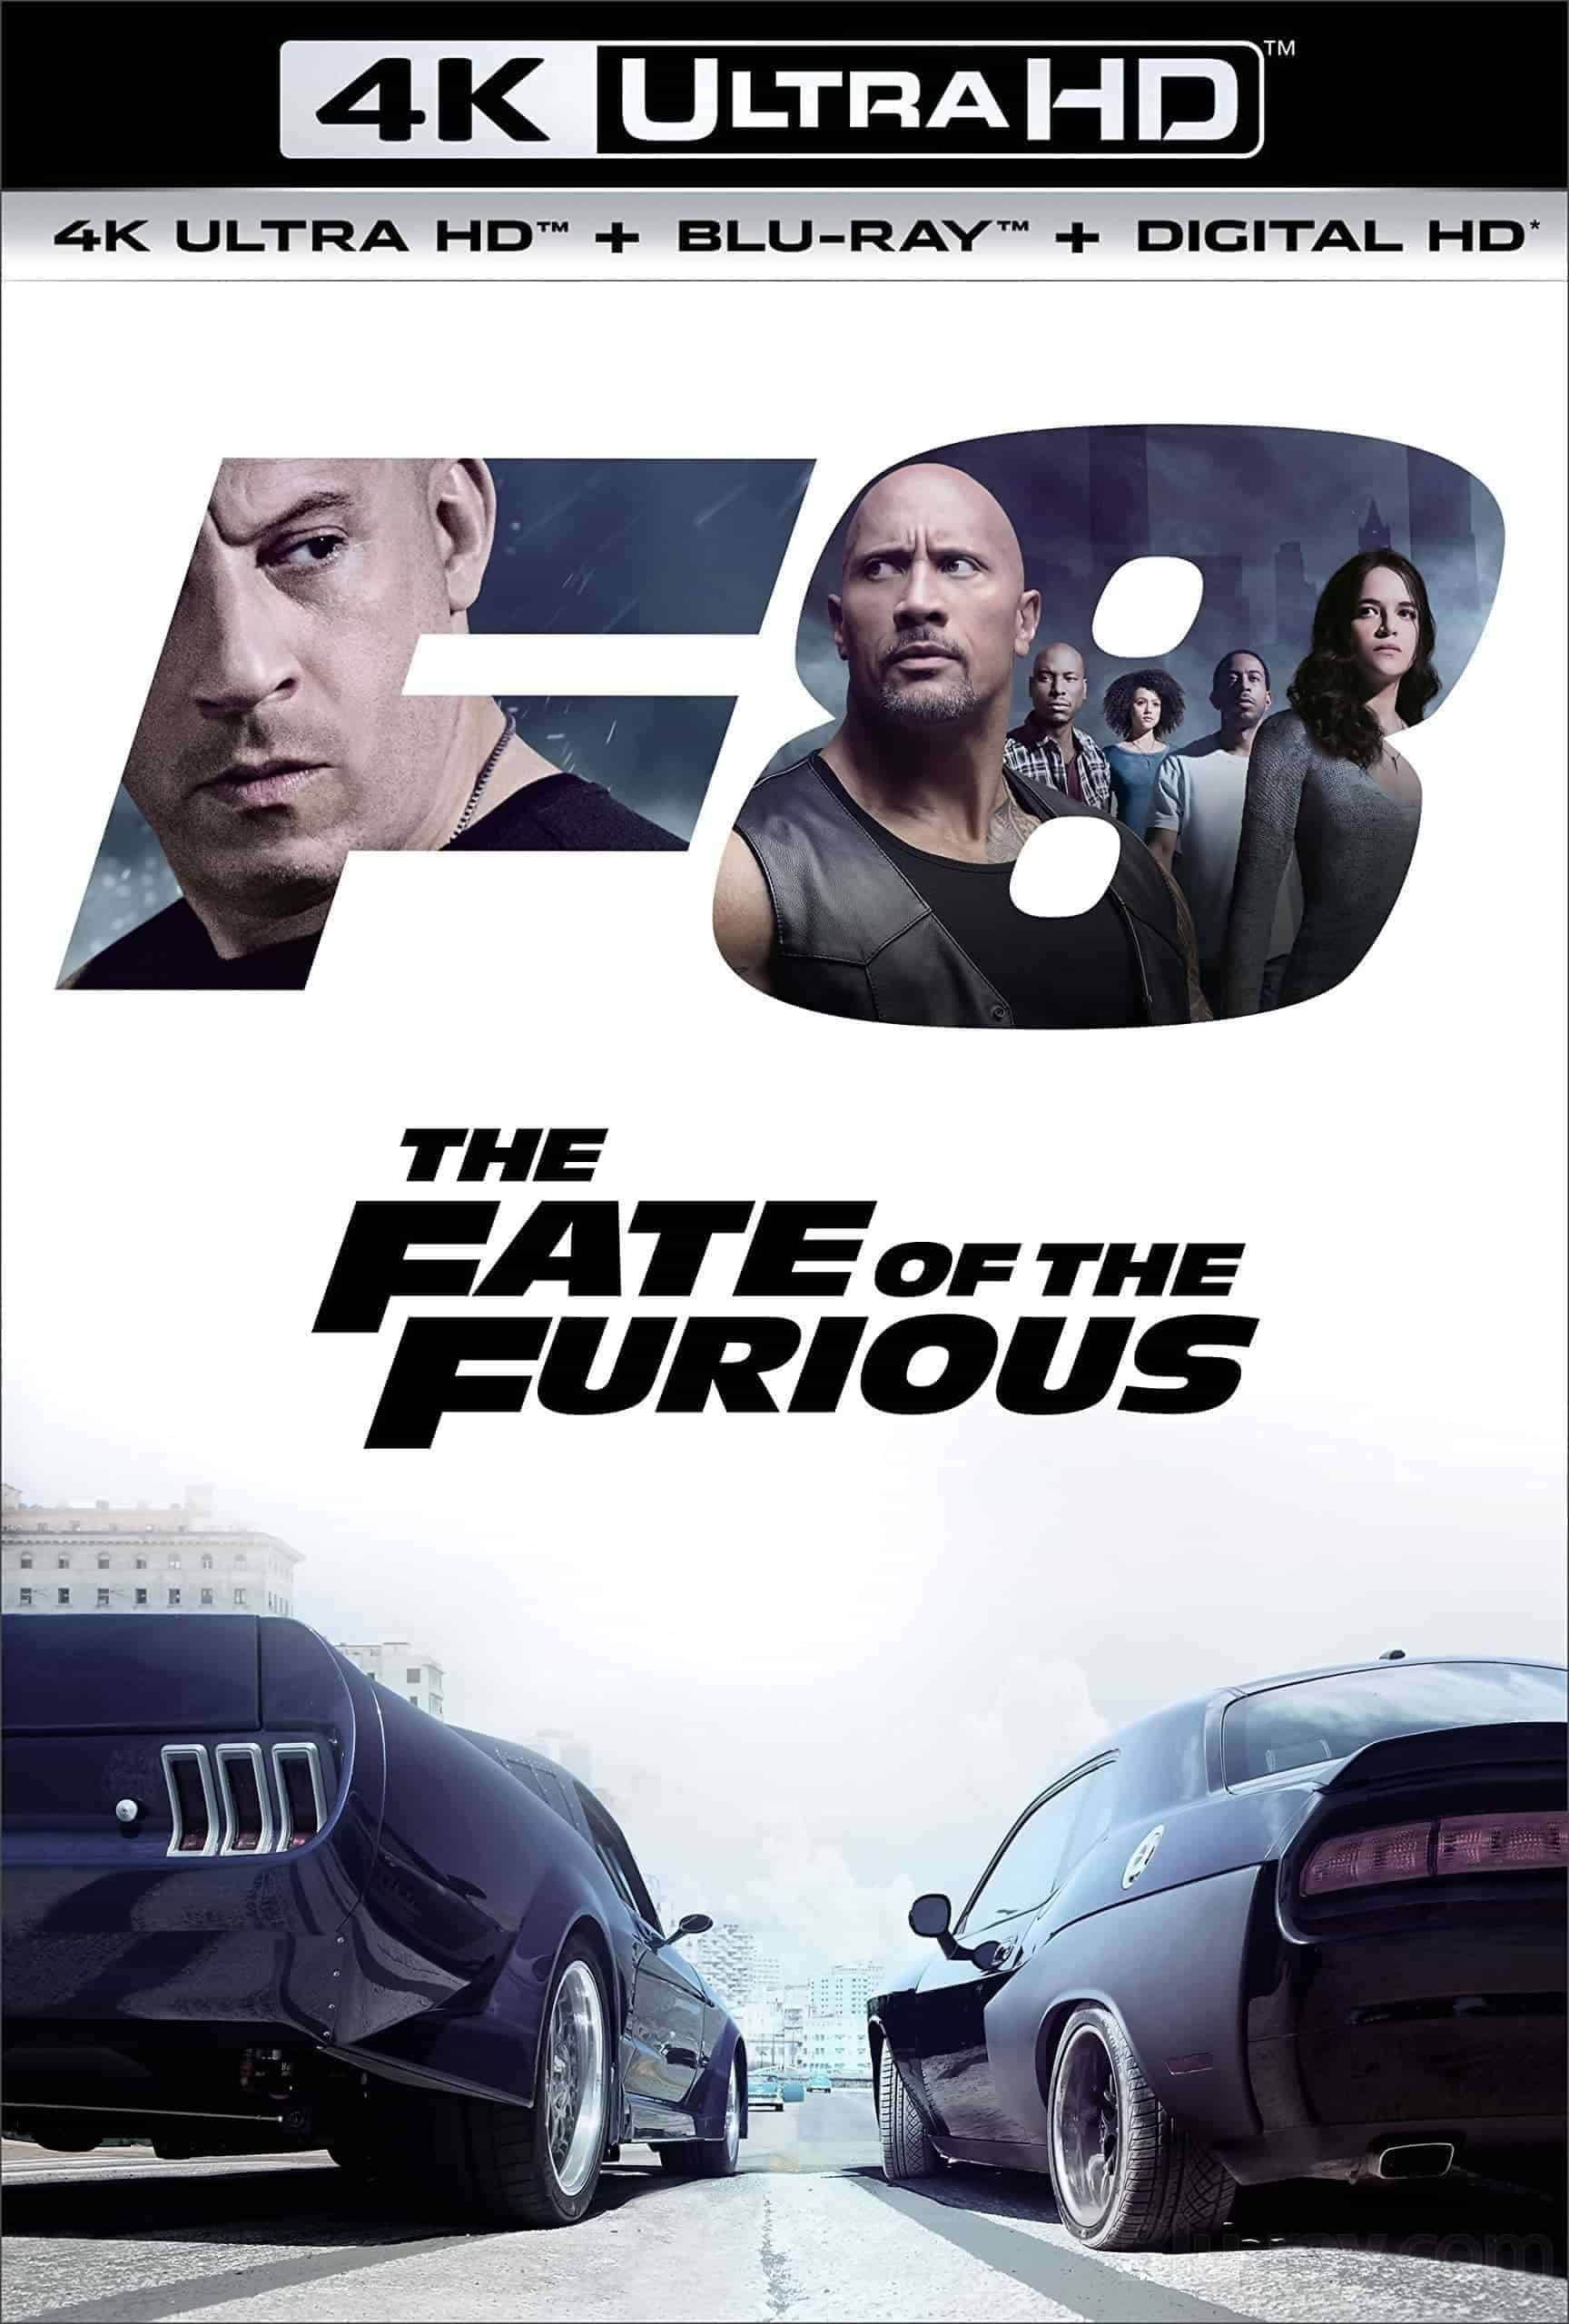 The Fate of the Furious 4K 2017 Ultra HD 2160p